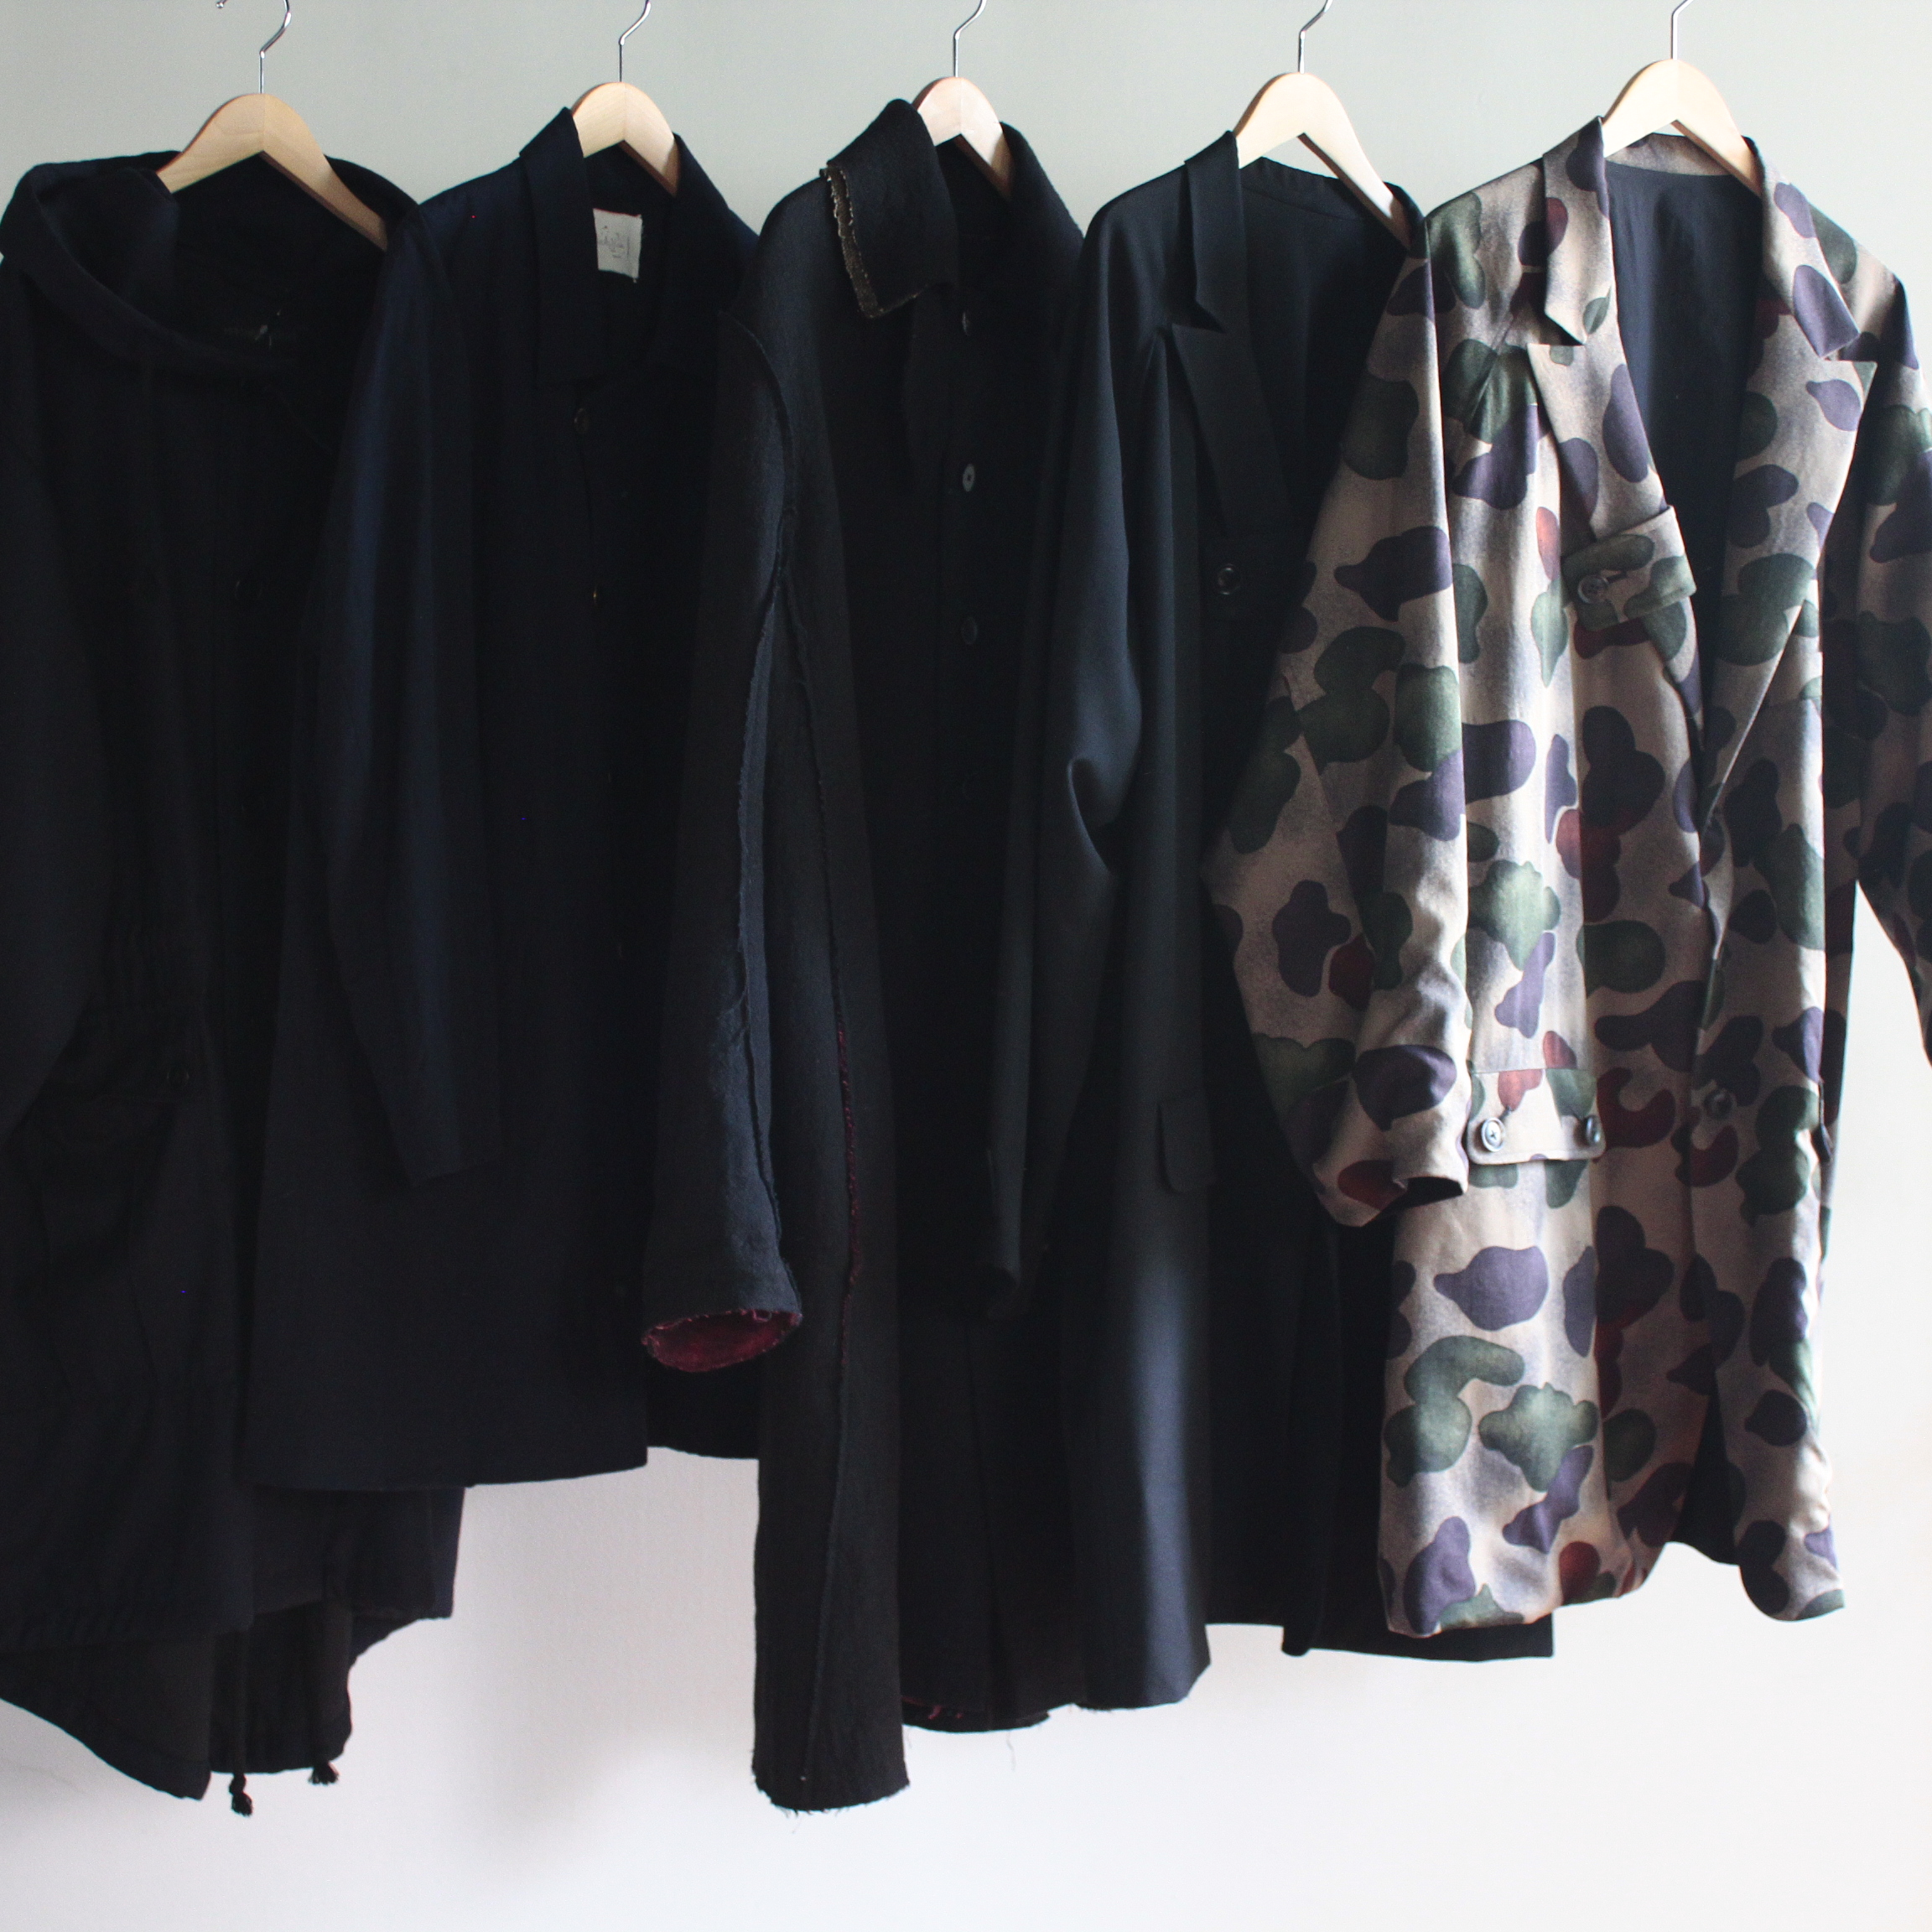 HUES 3rd floor 17-18 A/W Outer Collection